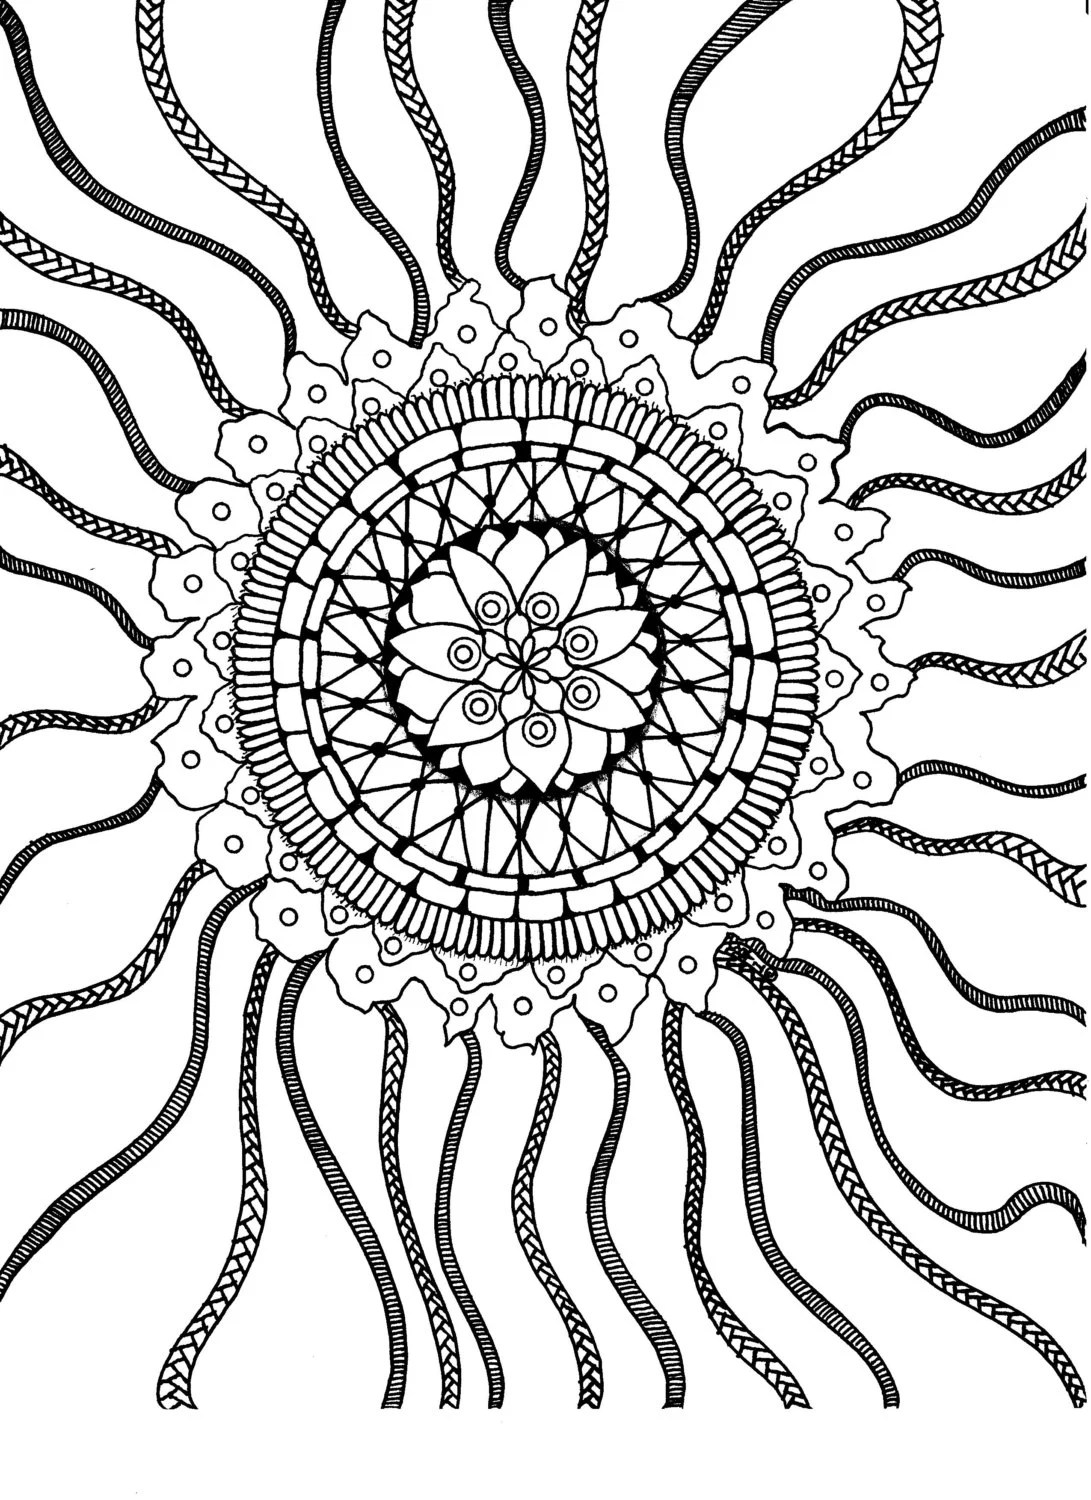 Doodle coloring page from BeOneCreations on Etsy Studio